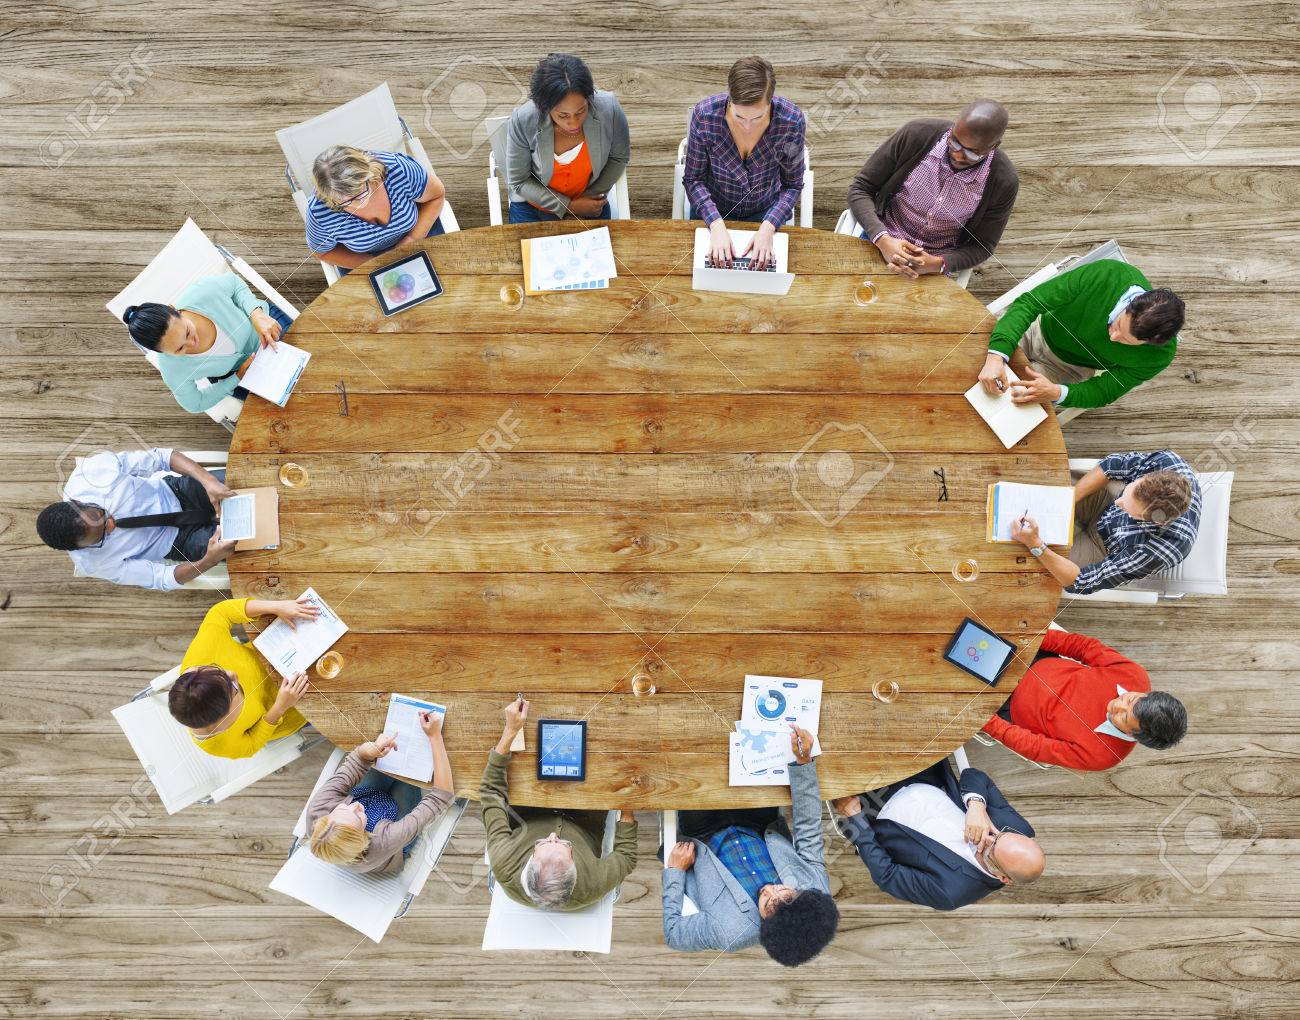 Aerial View People Working Sharing Connection Conference Table Stock Photo